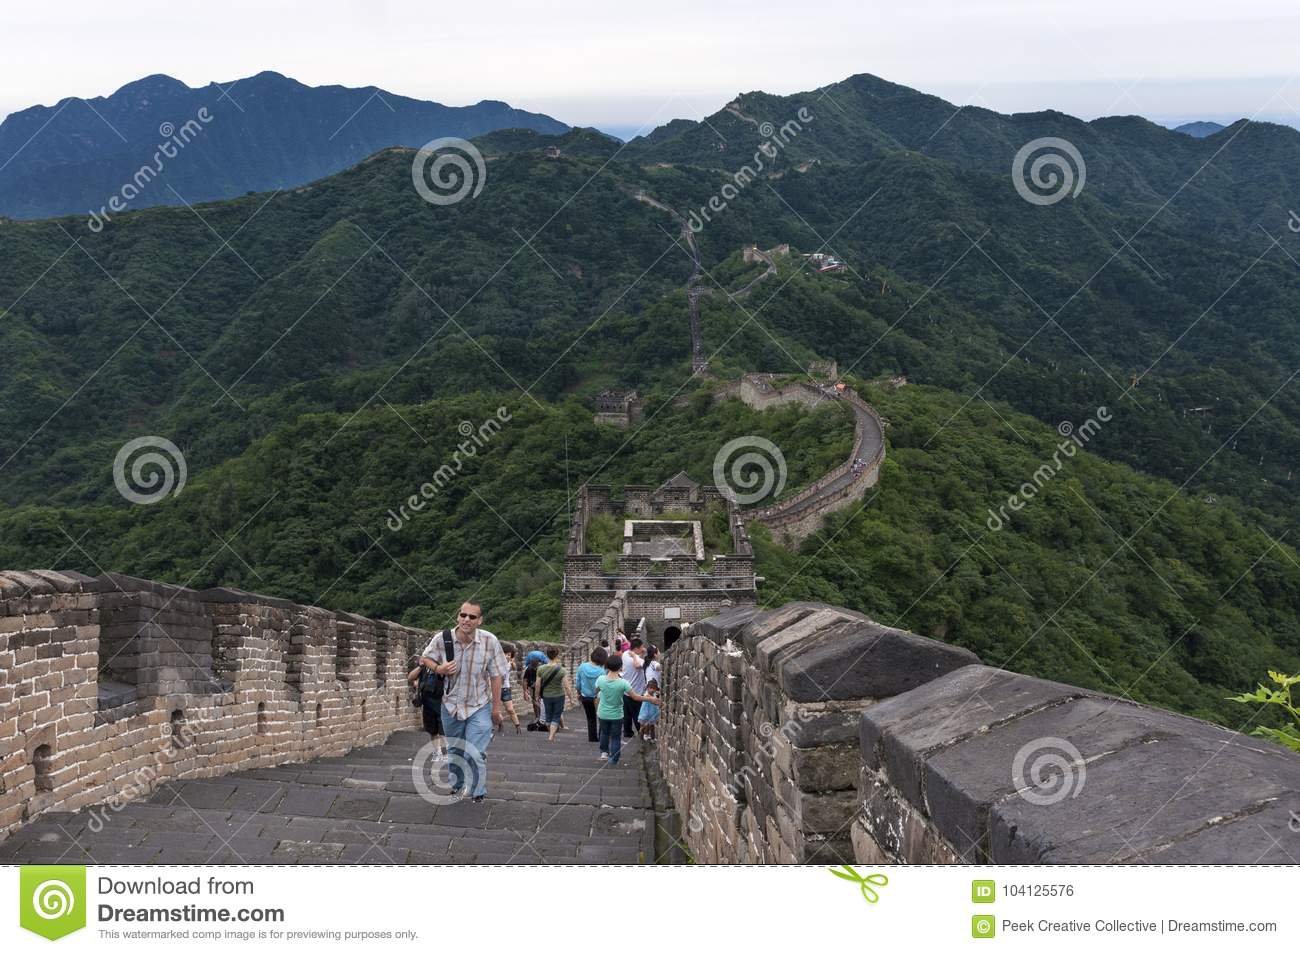 Tourists walking along a section of the Great Wall of China in Mutianyu, Chin